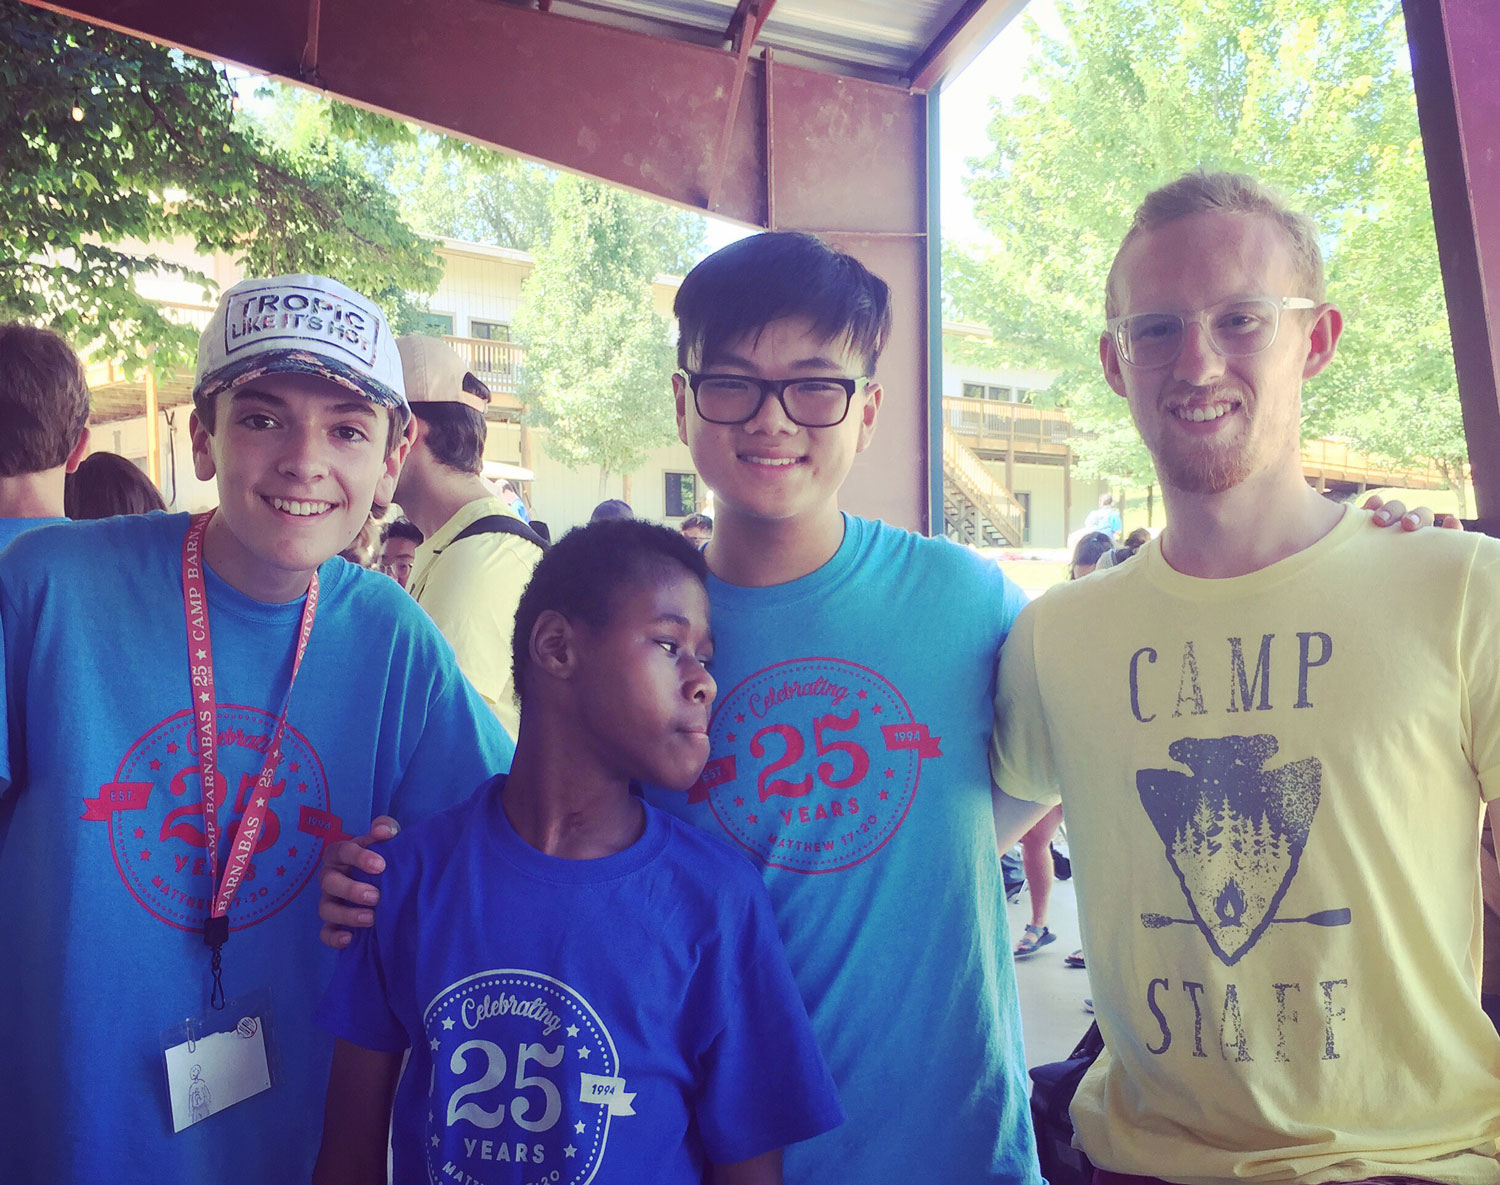 Small group posing together at camp.